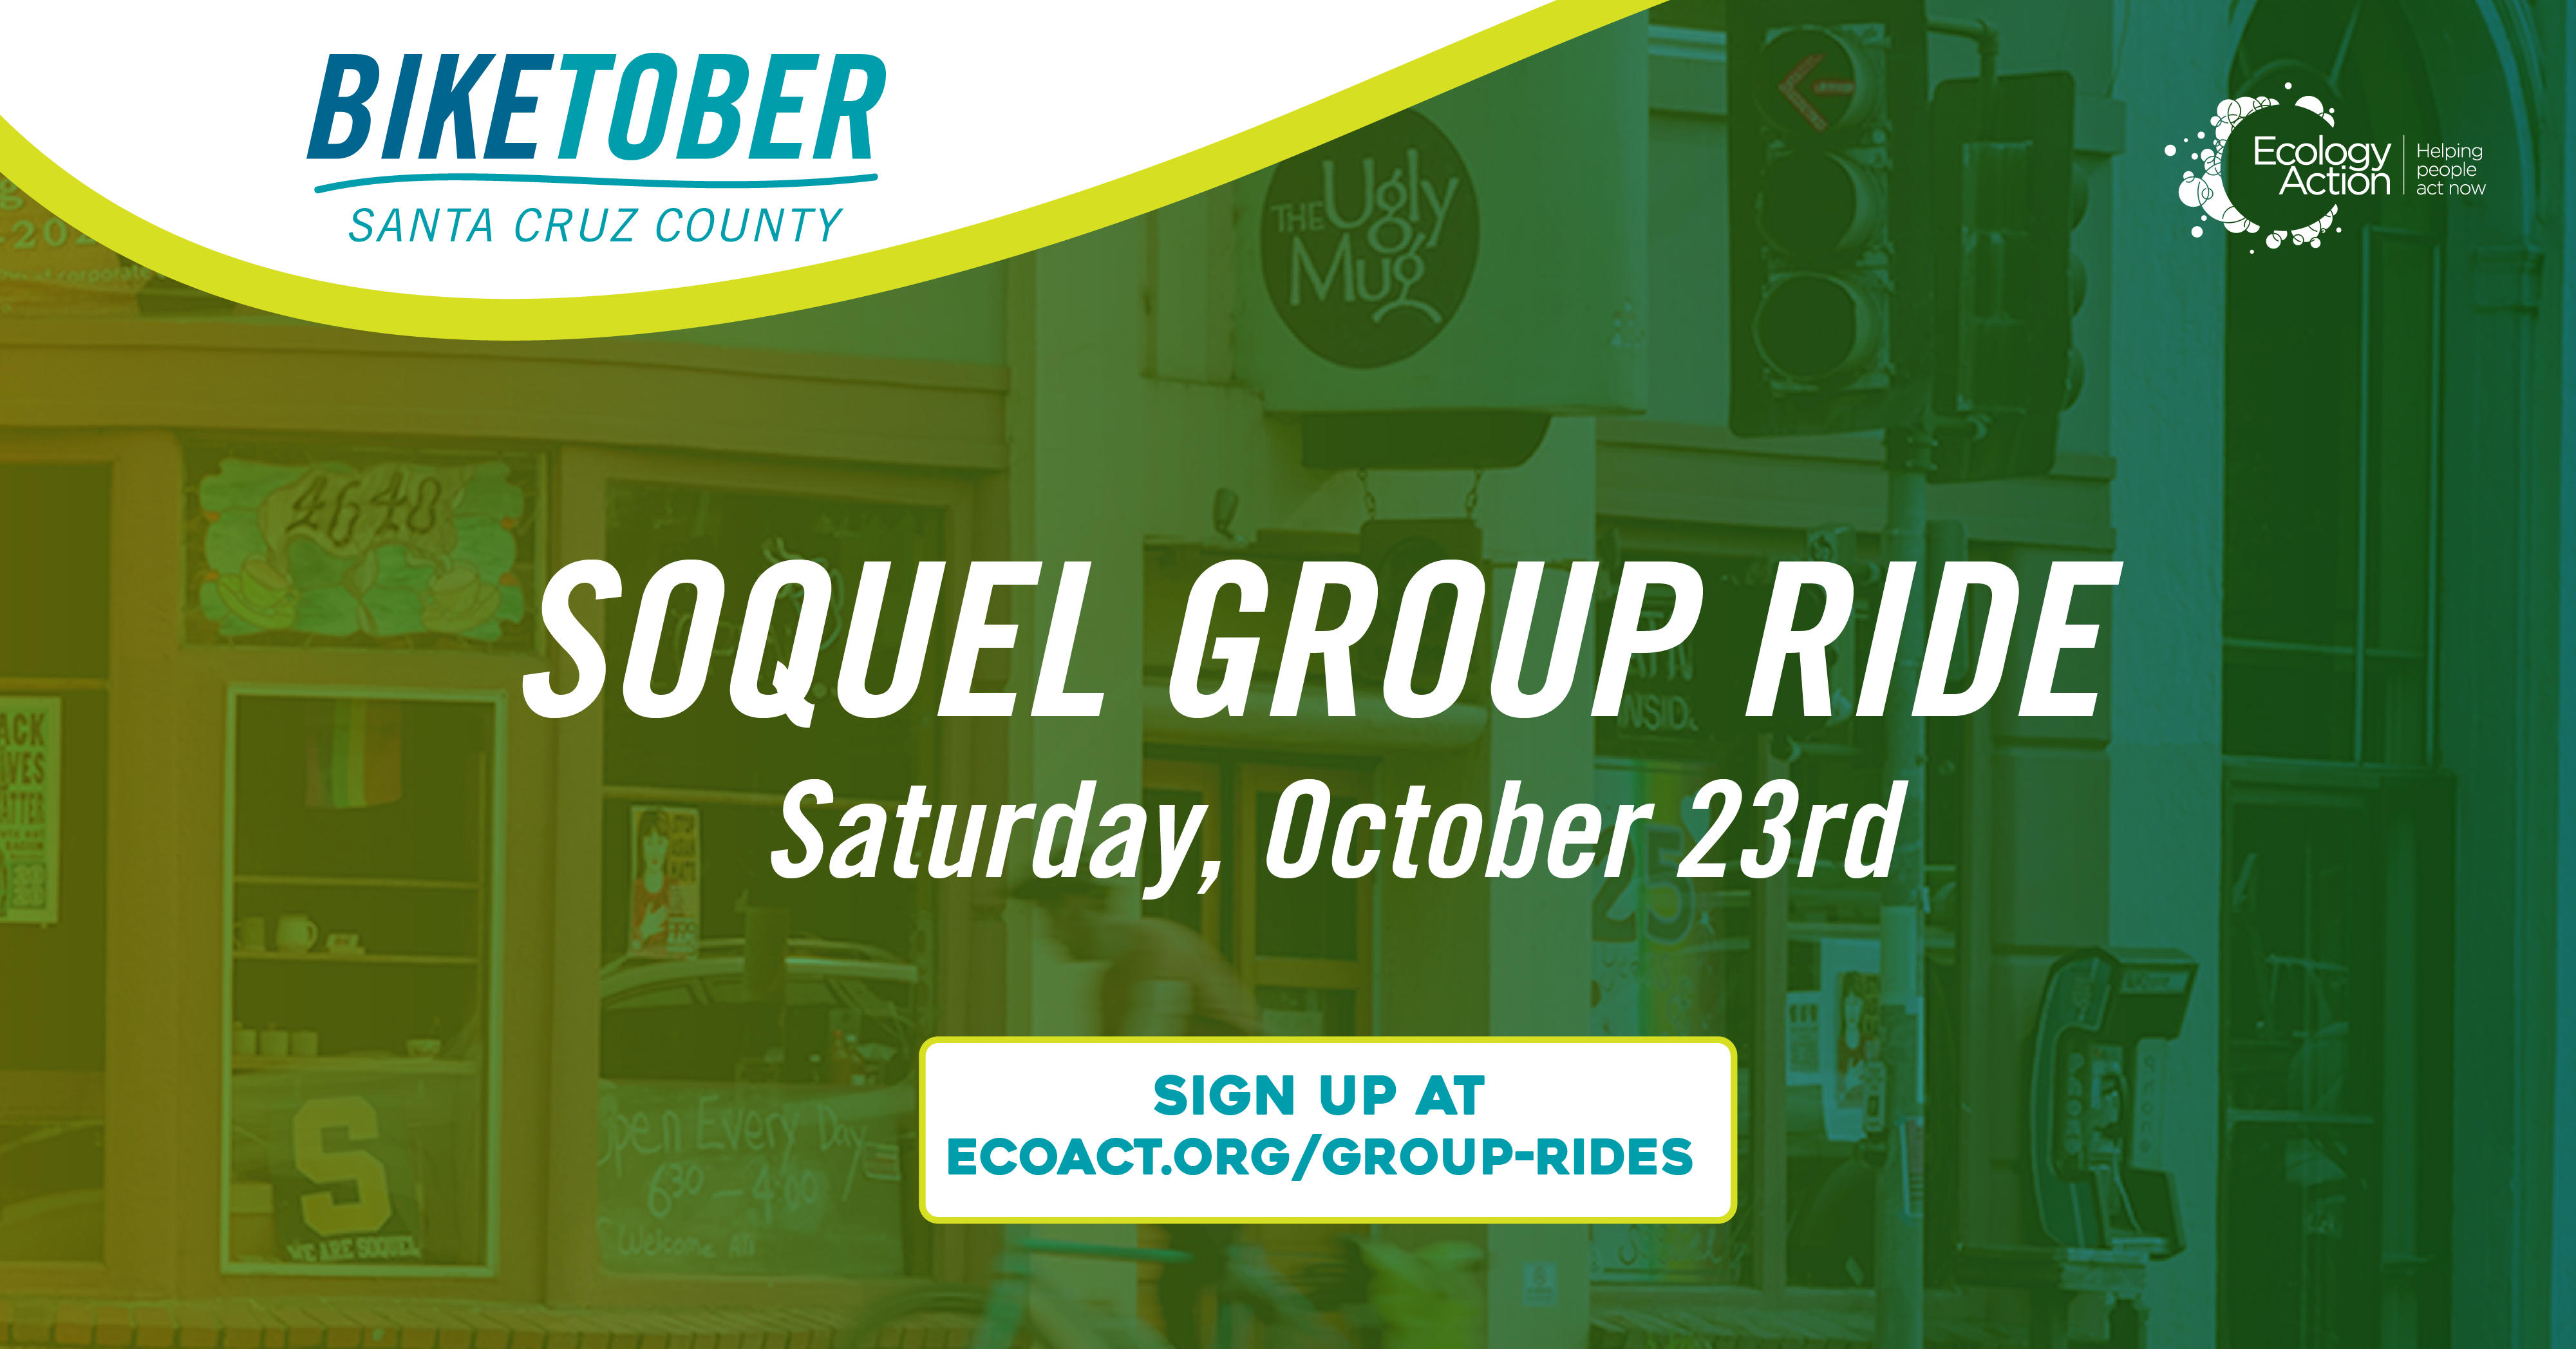 Biketober Santa Cruz County social media post picturing a street with shop windows. The window frames are different colours and the image has a green blue overlay theme. Text reads 'Soquel group ride Saturday, October 23rd'.